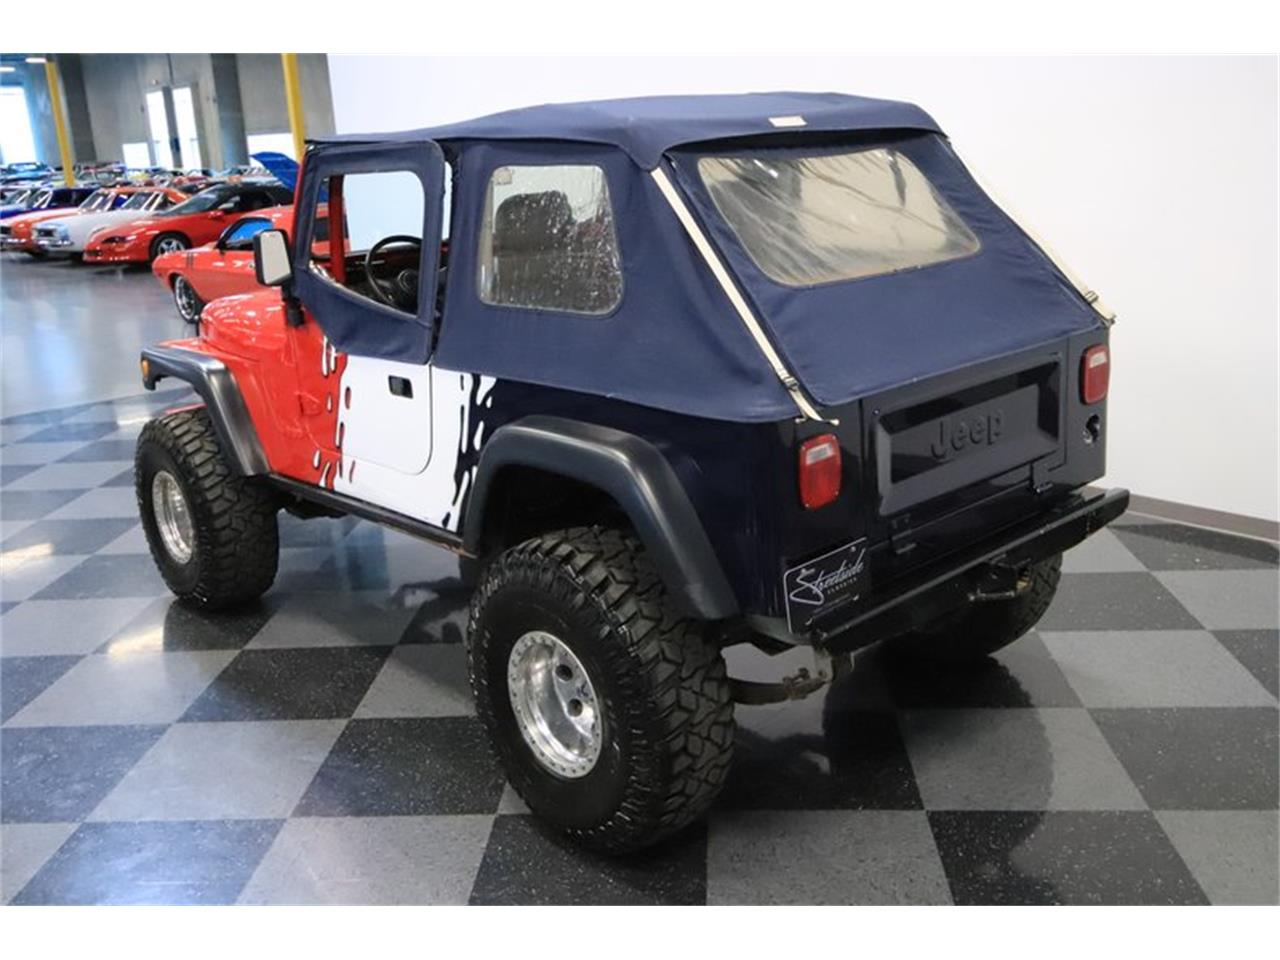 Large Picture of '83 Jeep CJ8 Scrambler located in Arizona Offered by Streetside Classics - Phoenix - Q5HM